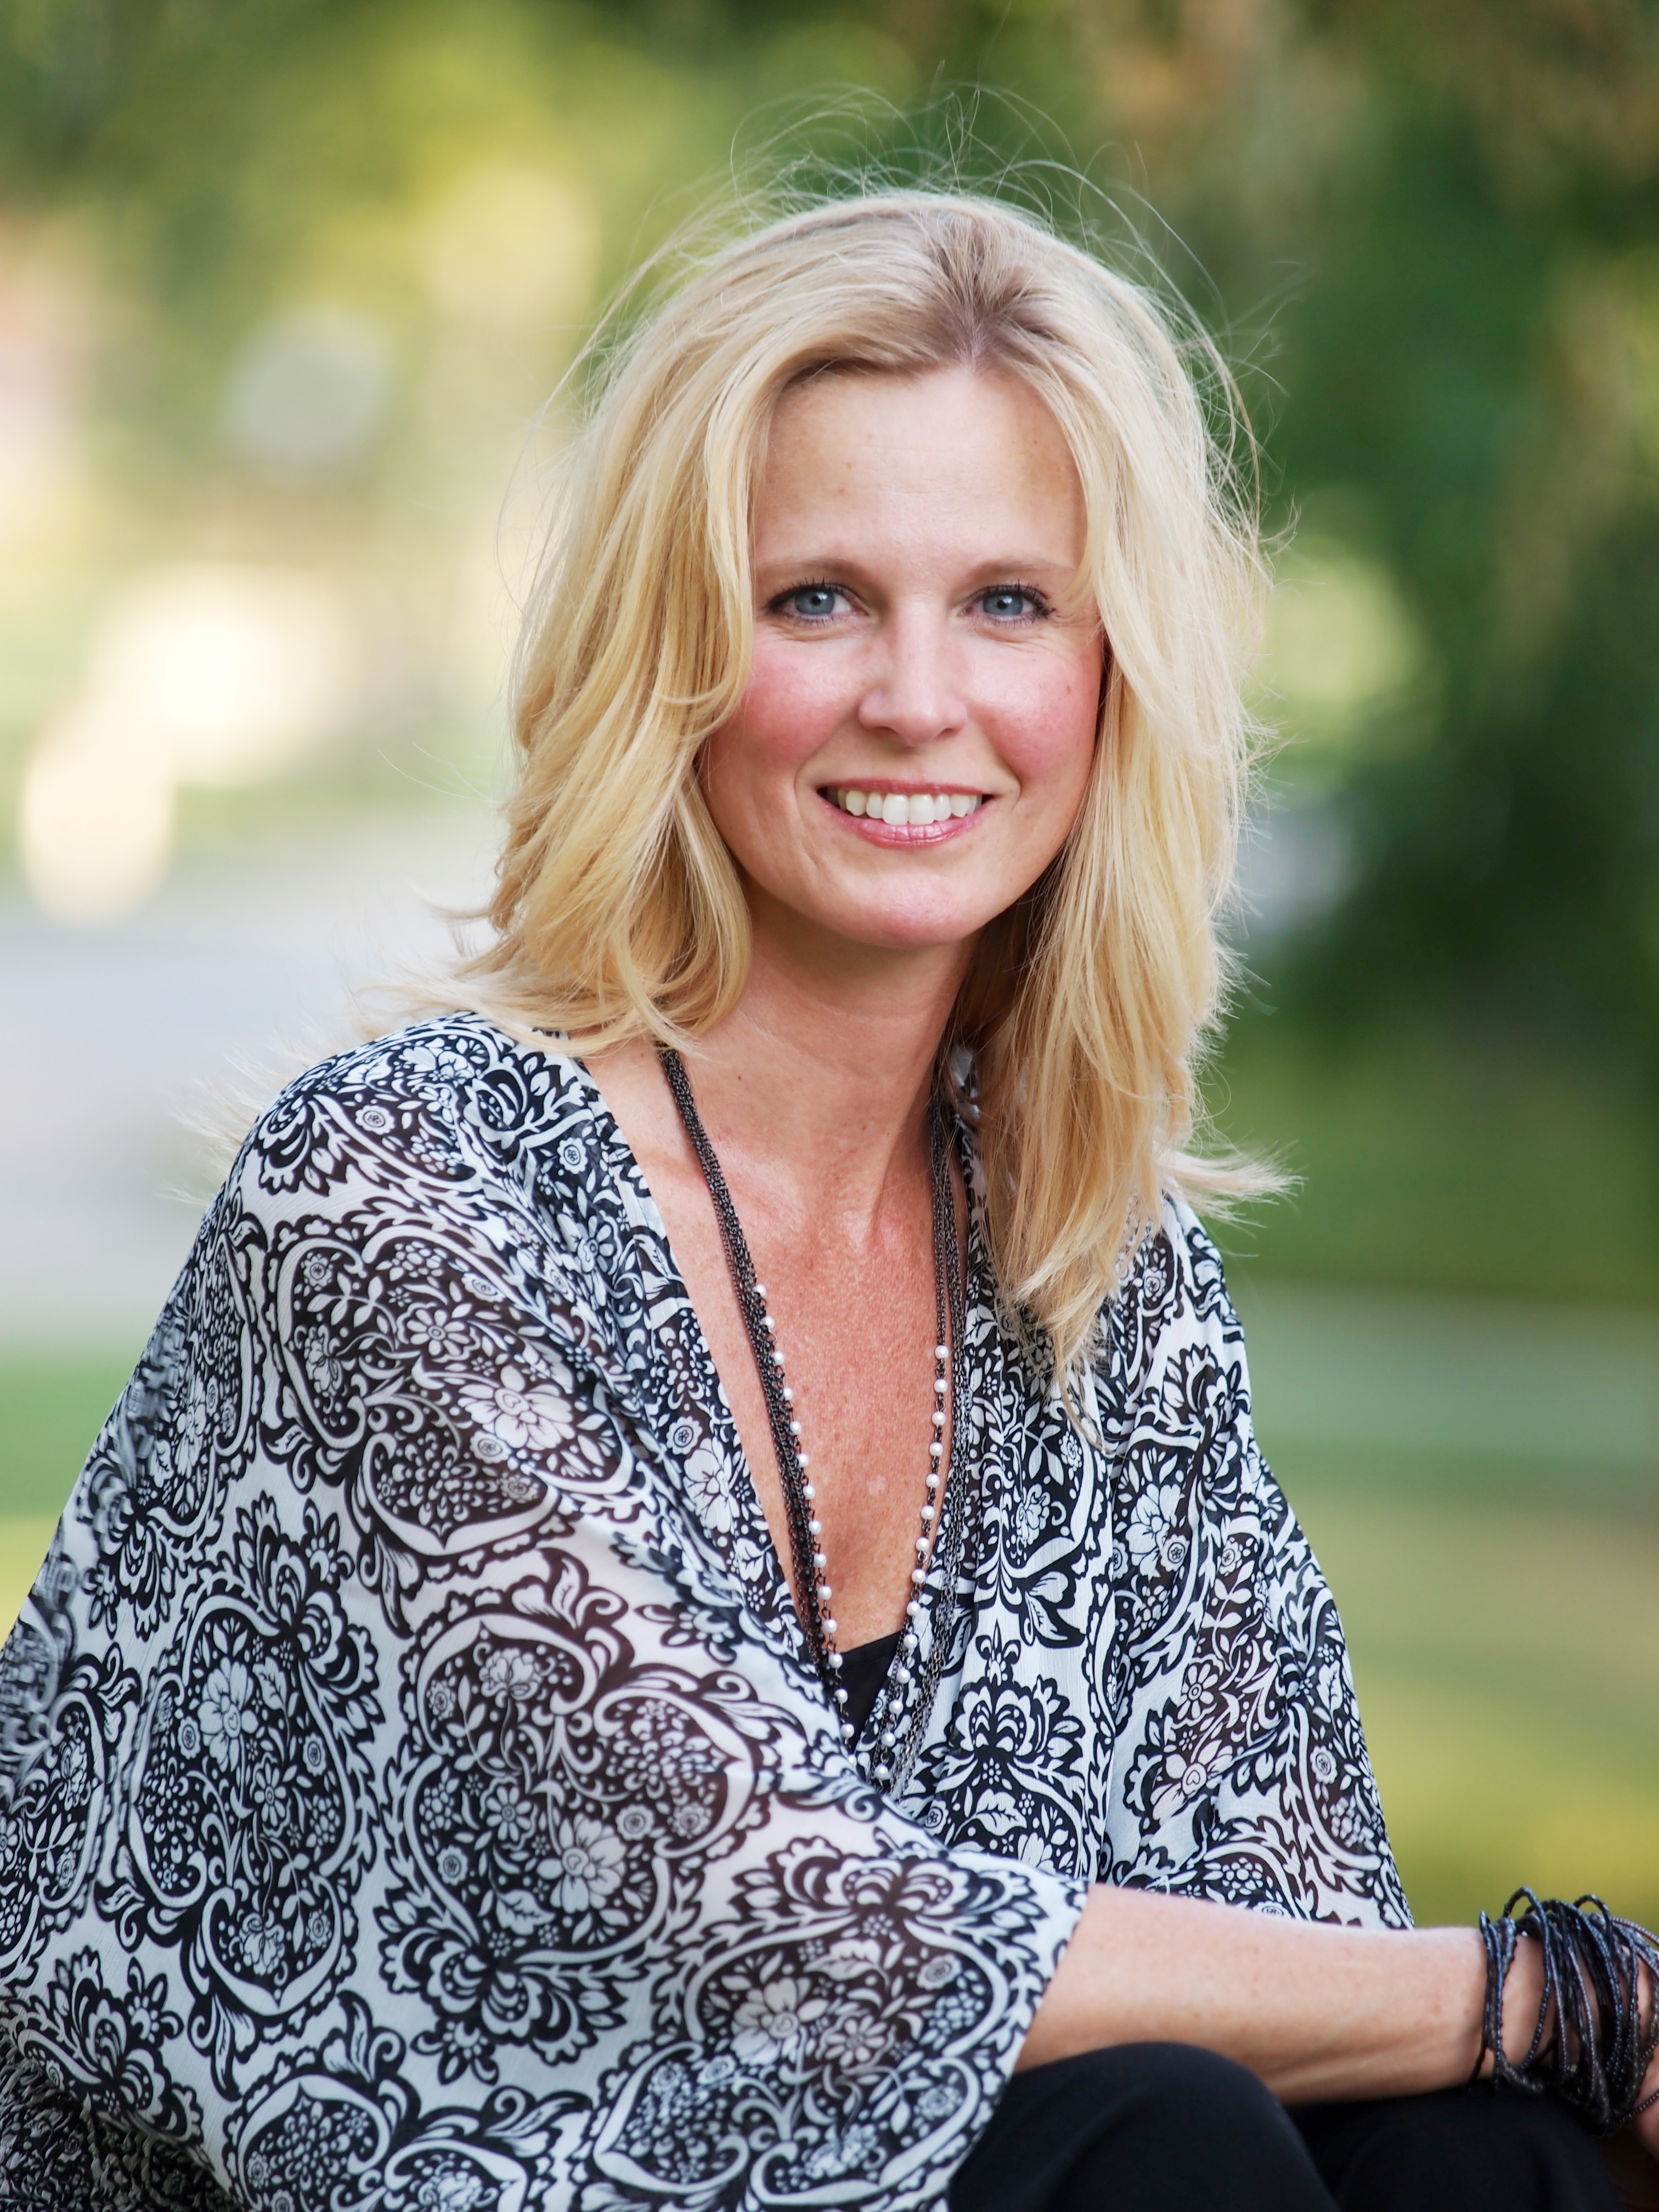 Teal Kelly Lewis Is New To Mcgraw Realtors Kelly Lewis Has Joined Mcgraw Realtors Mcgraw Realtors Mcgraw Realtors Tulsa Jessica Scott Mcgraw Realtors Tulsa Listings houzz-03 Mcgraw Realtors Tulsa